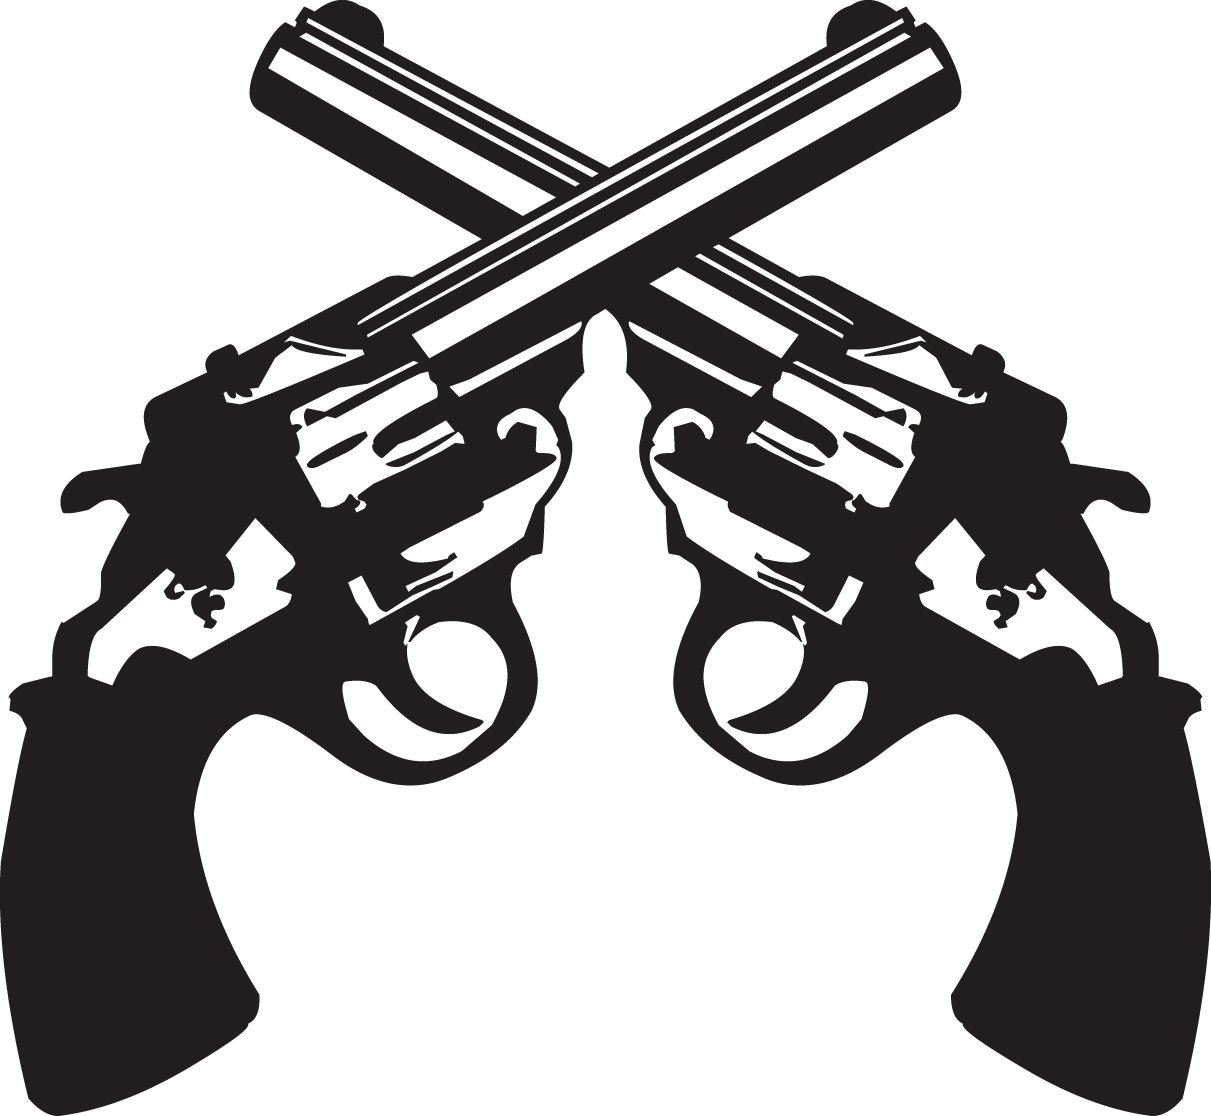 2 clipart pistol. Crossed pencil and in